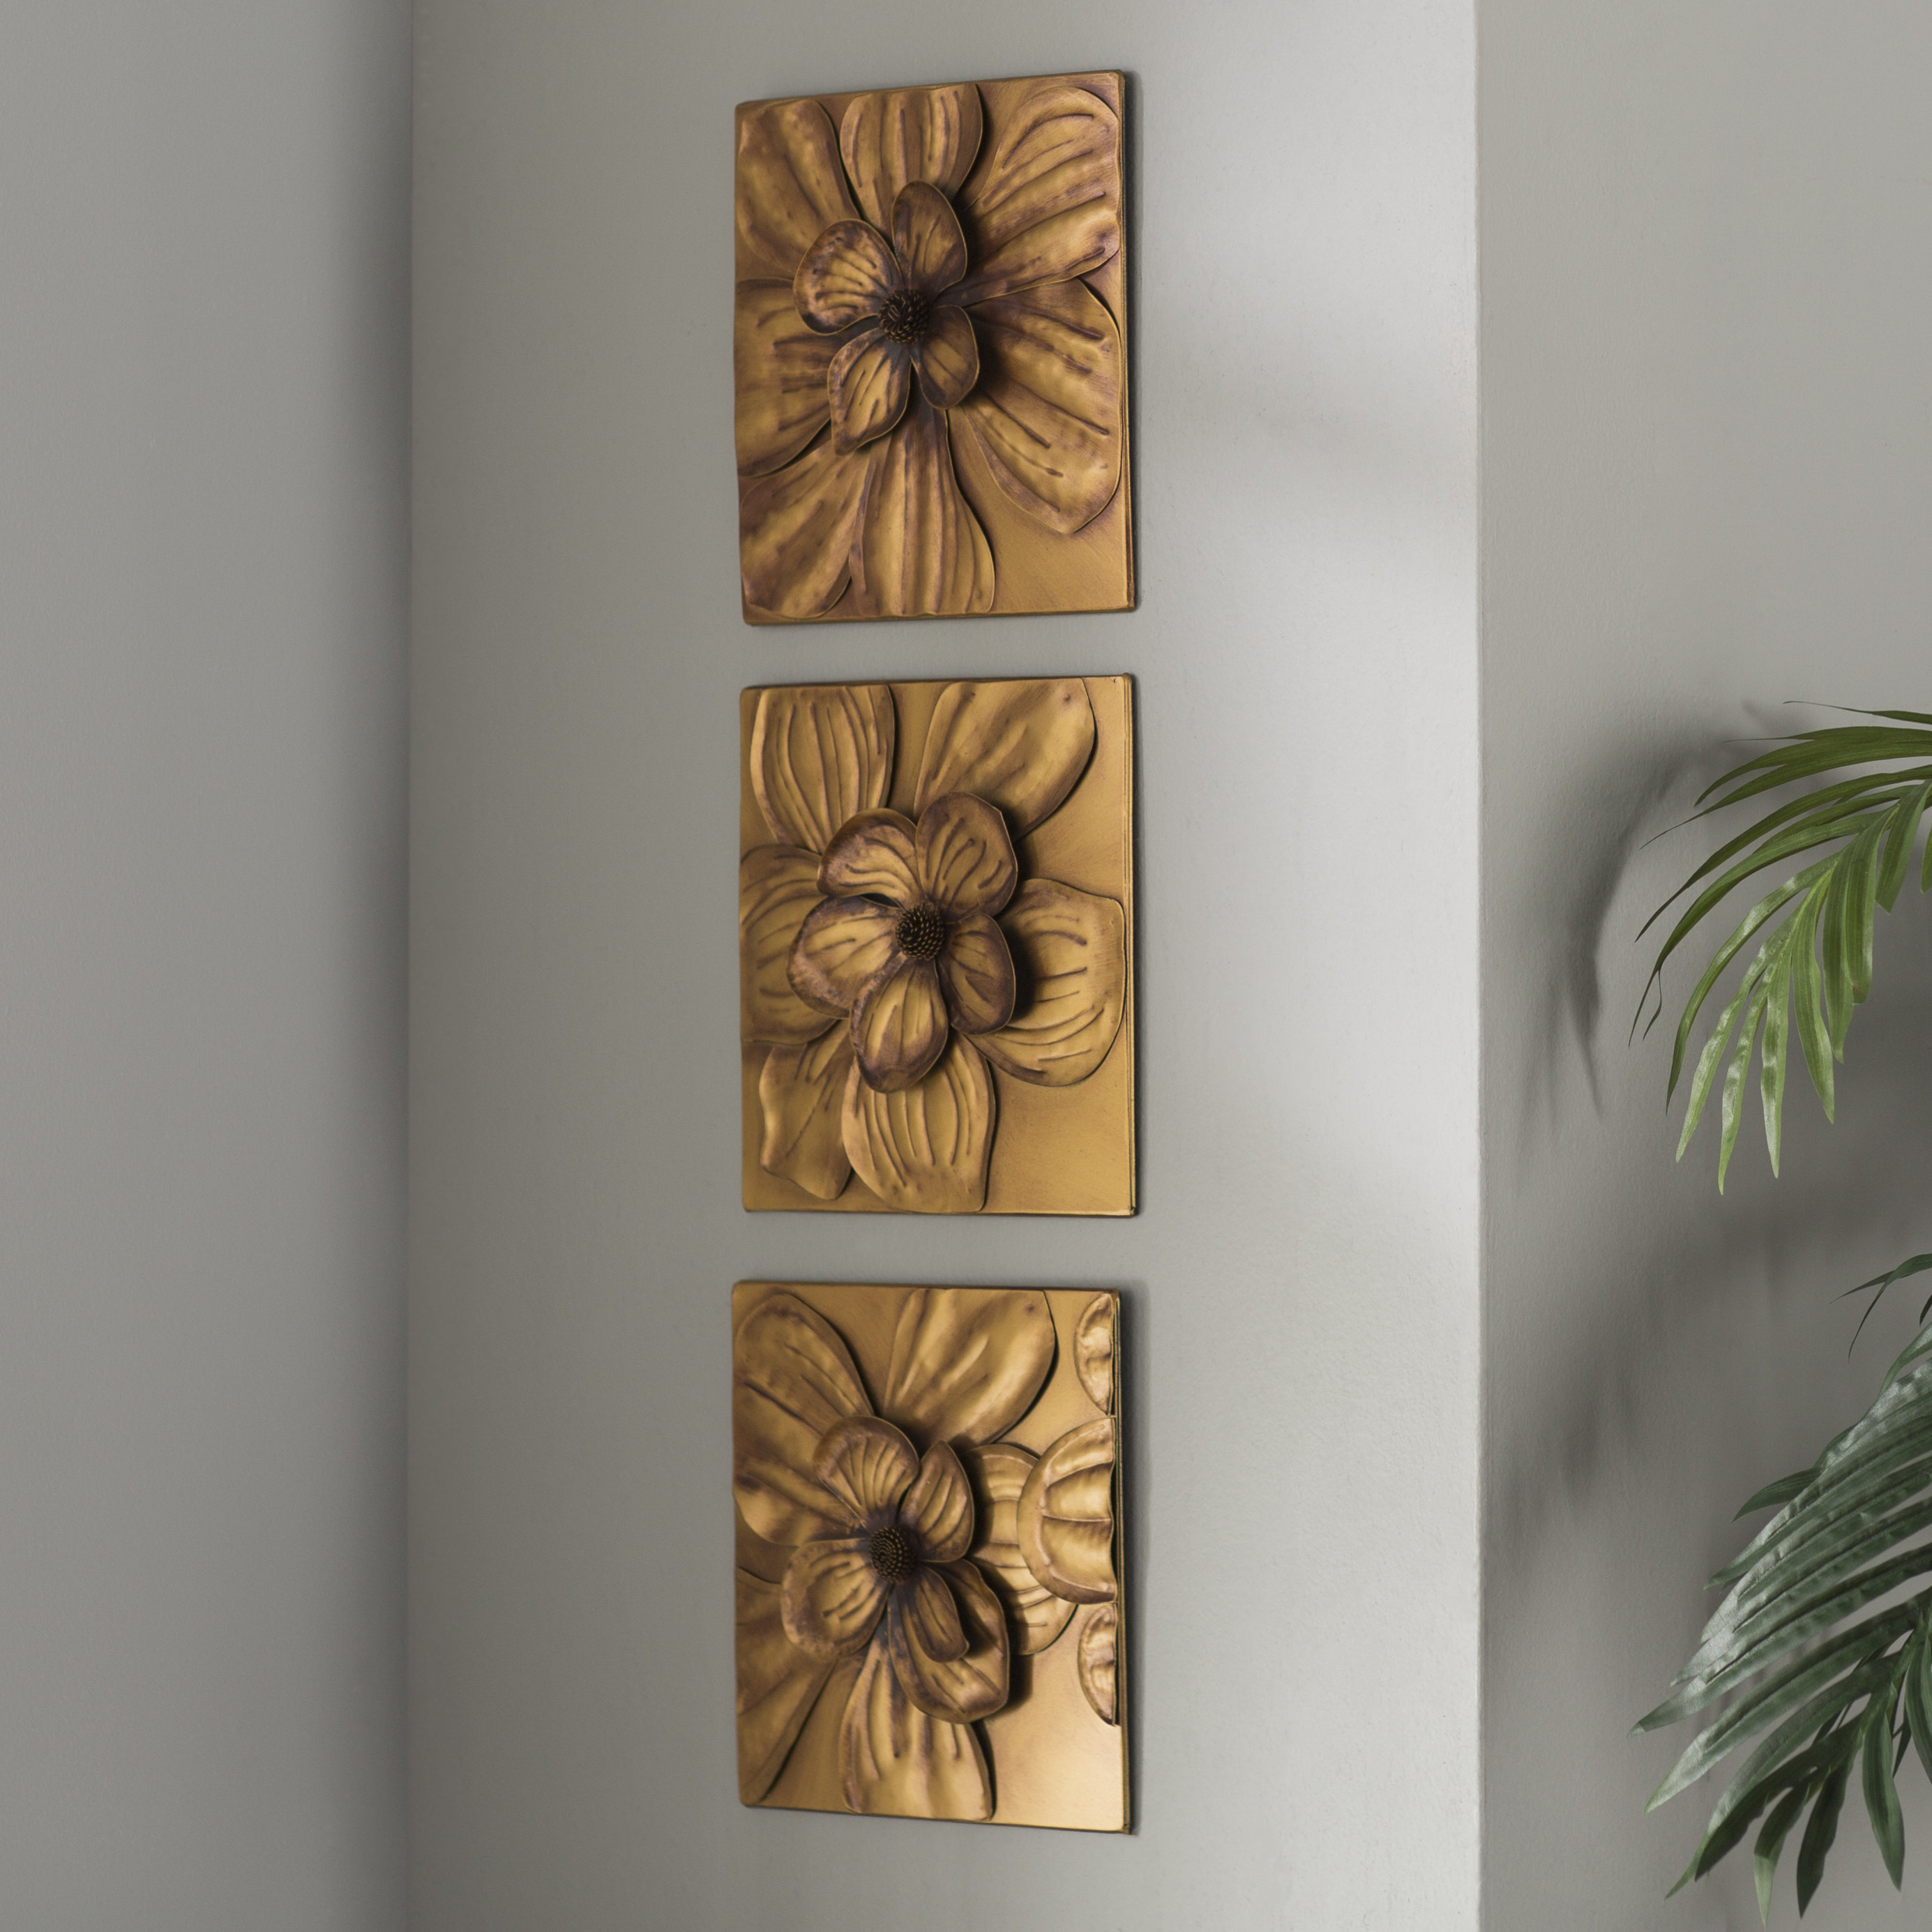 3 Piece Wall Decor Set | Wayfair with 3 Piece Ceramic Flowers Wall Decor Sets (Image 6 of 30)